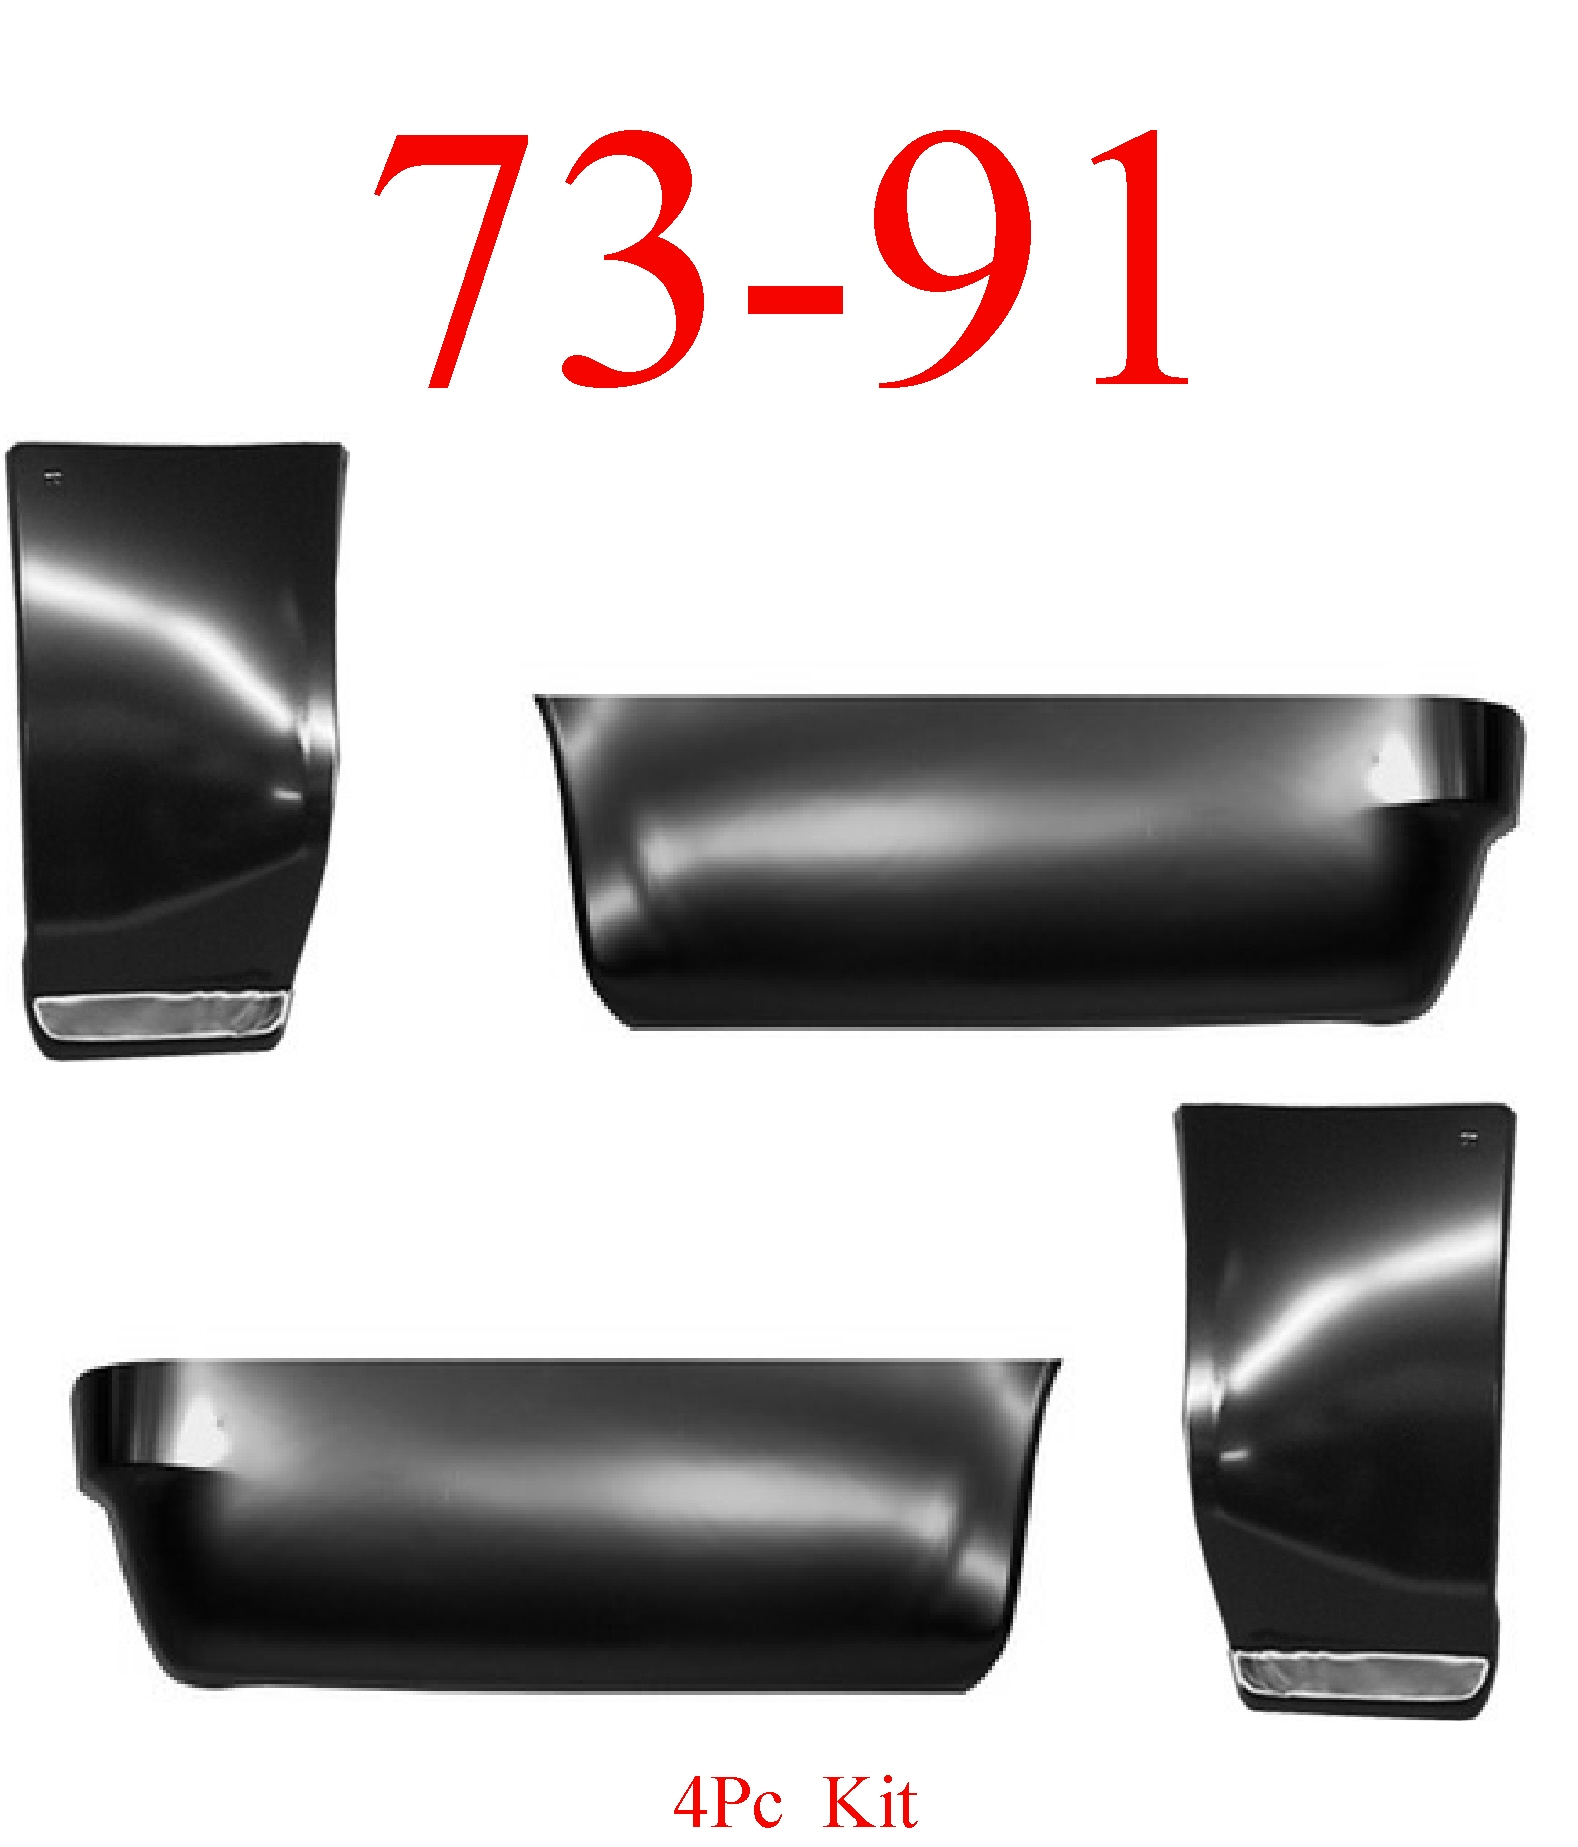 73-91 Chevy Suburban 4Pc Front & Rear Lower Quarter Panel Set